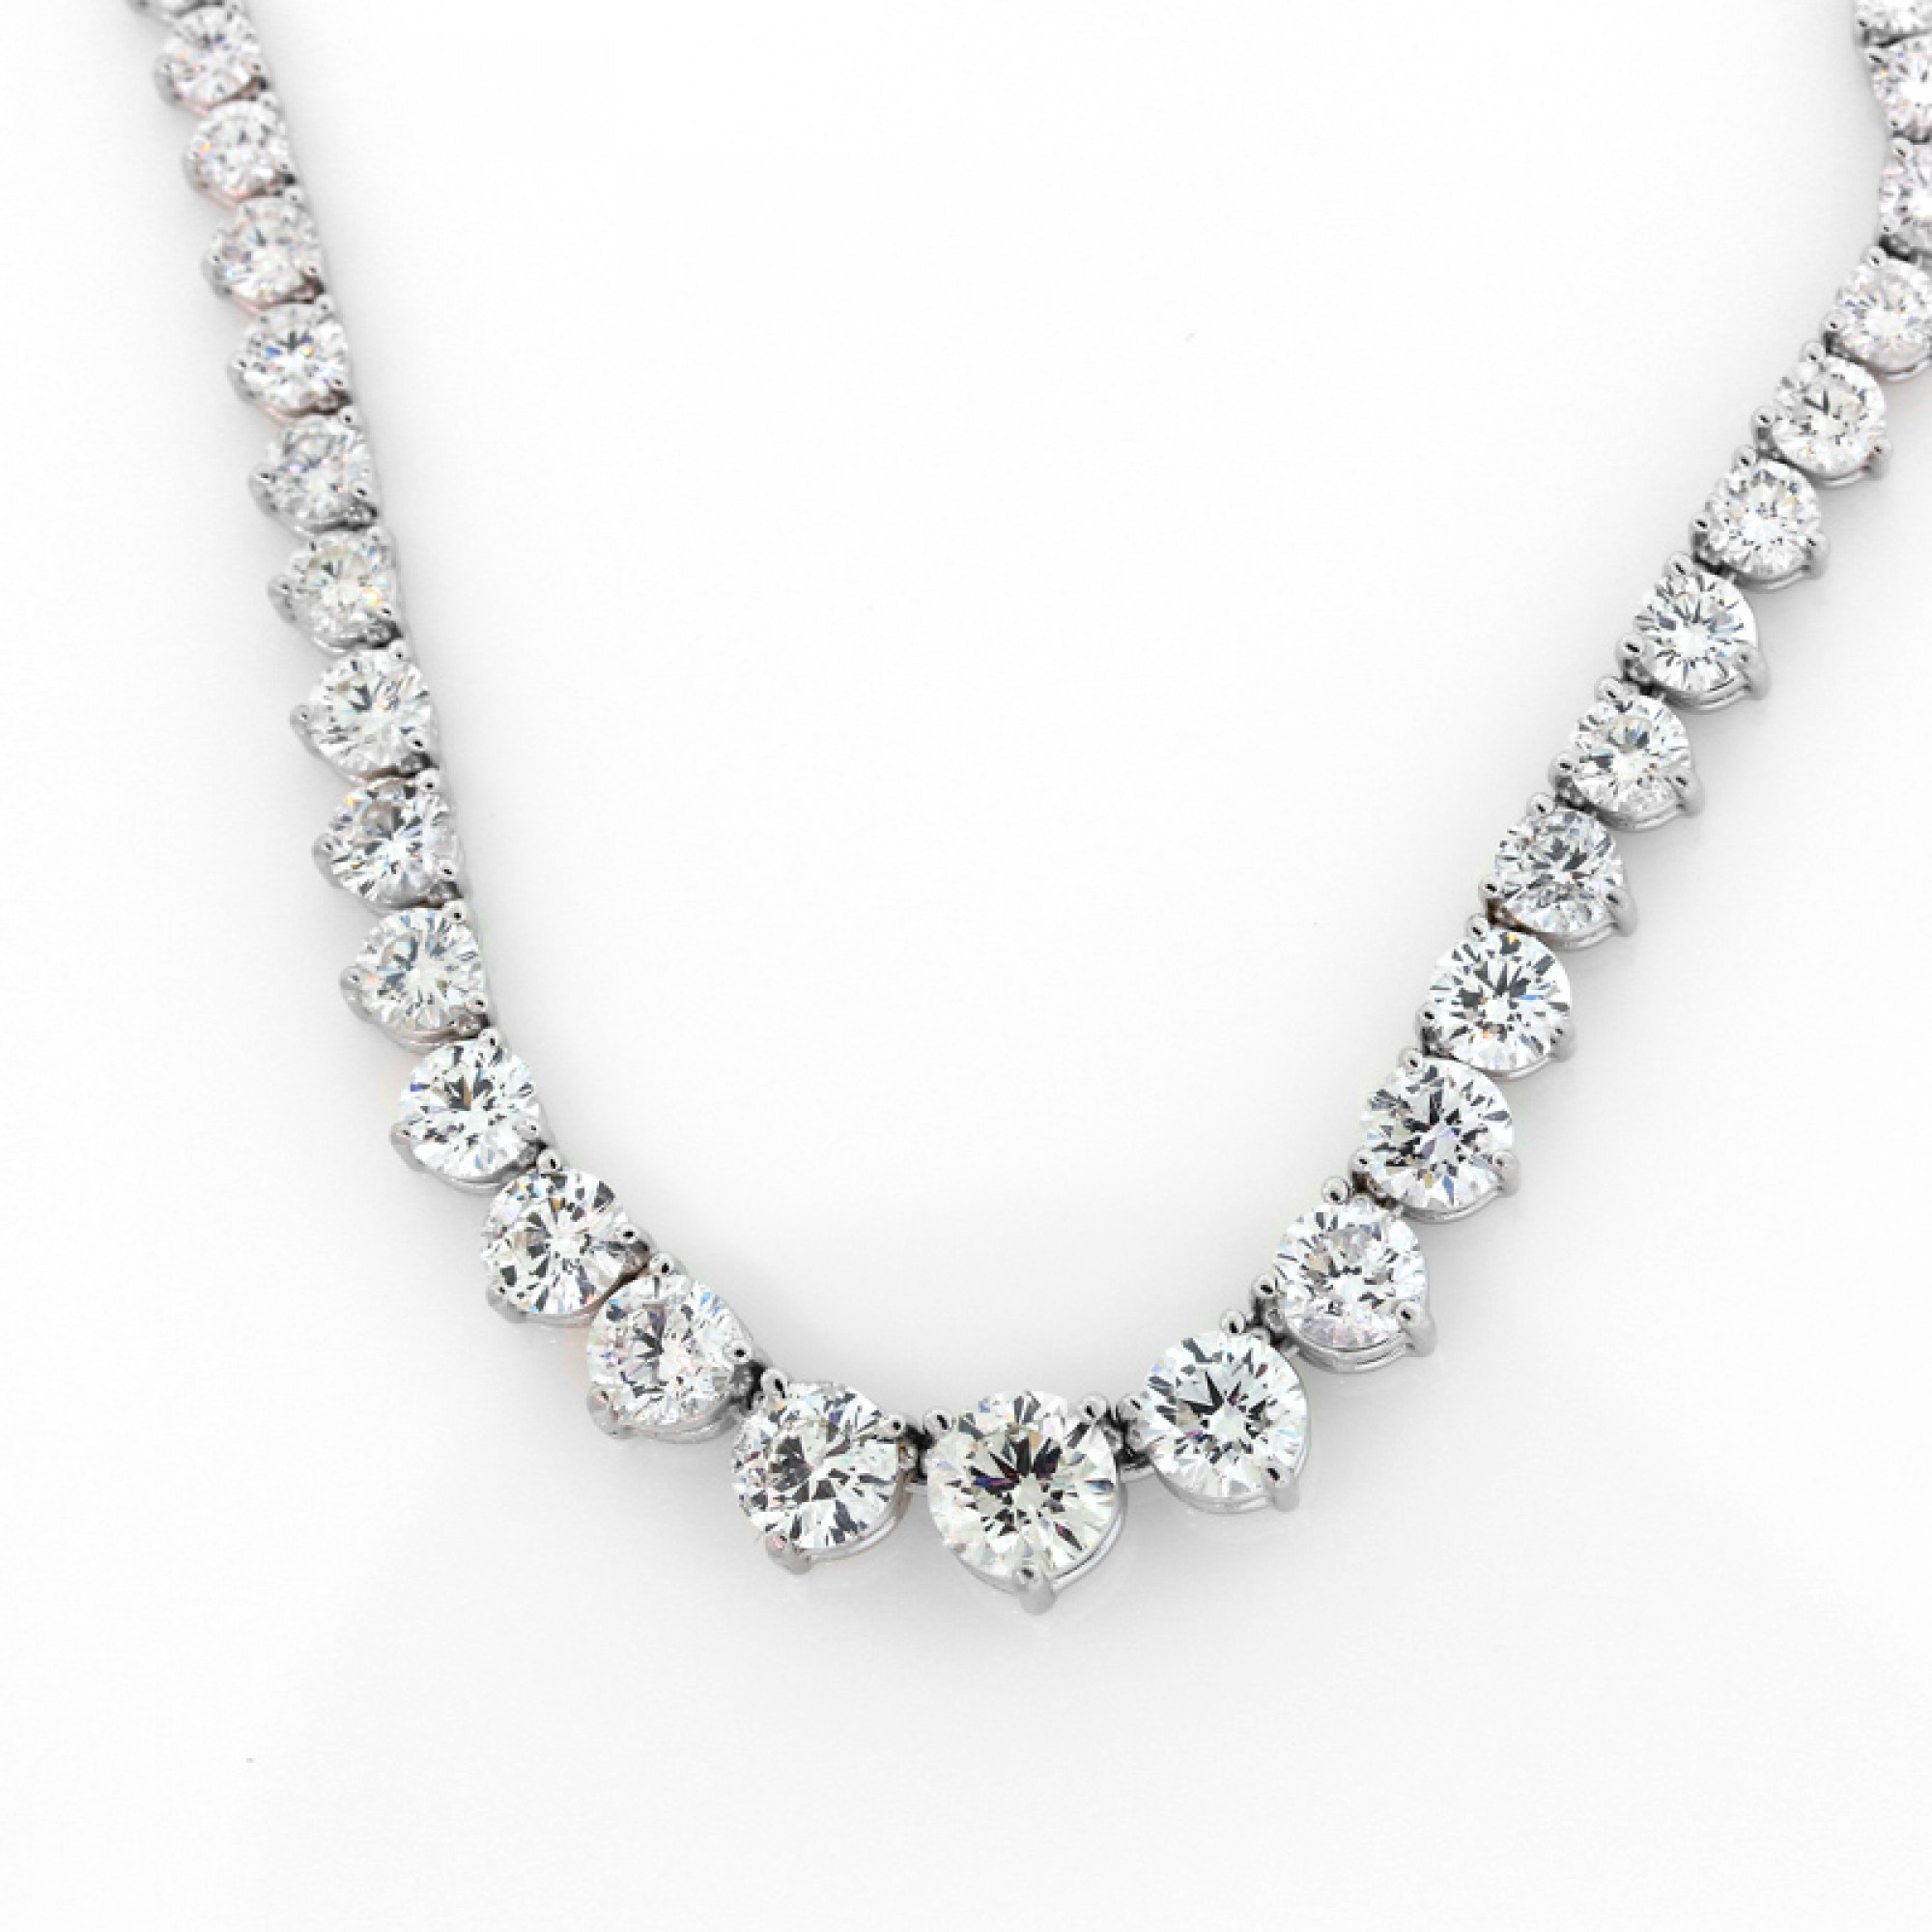 10 26cts Tw Graduated Diamond Tennis Necklace Cheap